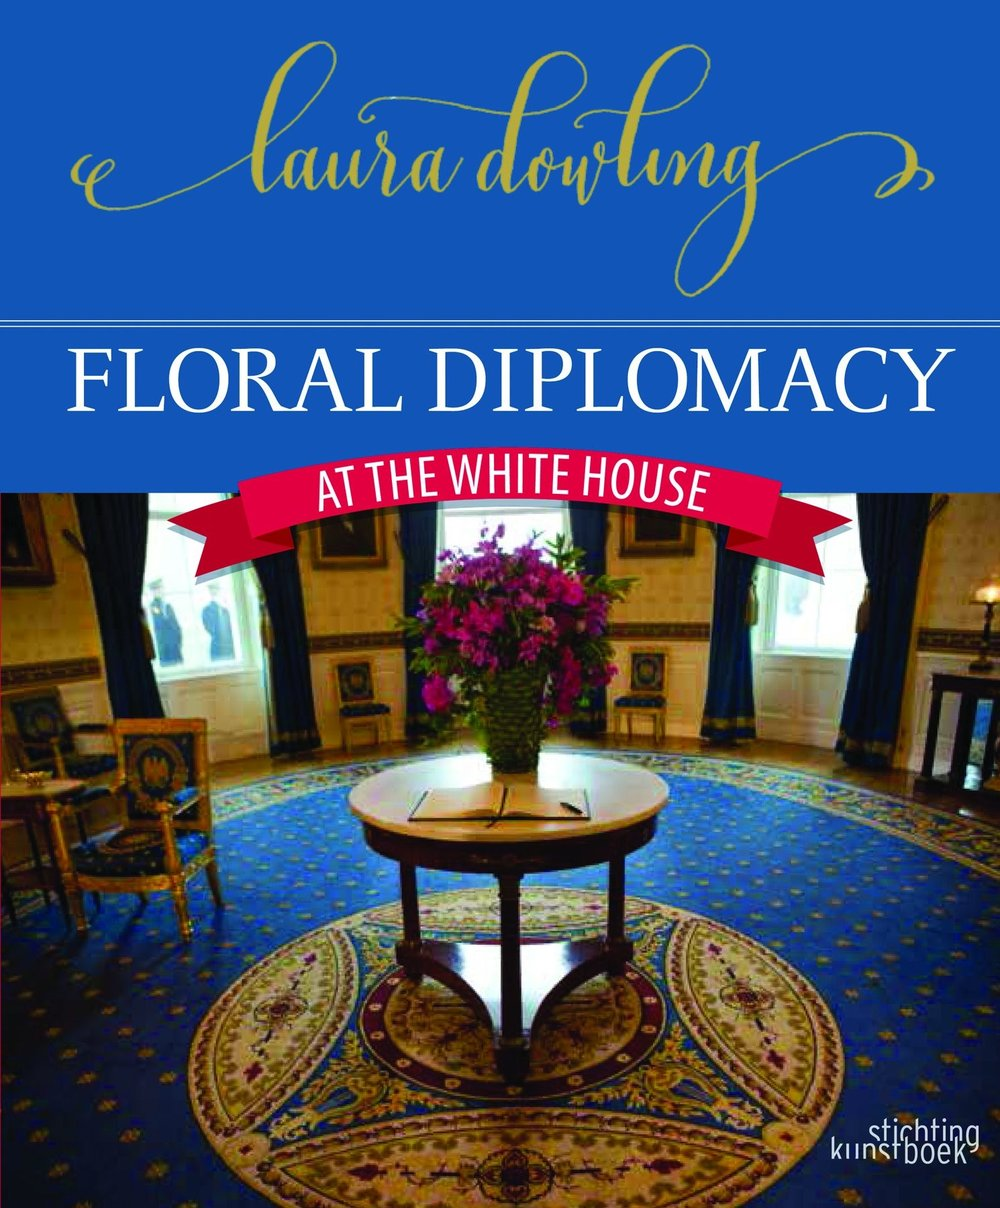 Floral Diplomacy At The White House - Laura Dowling